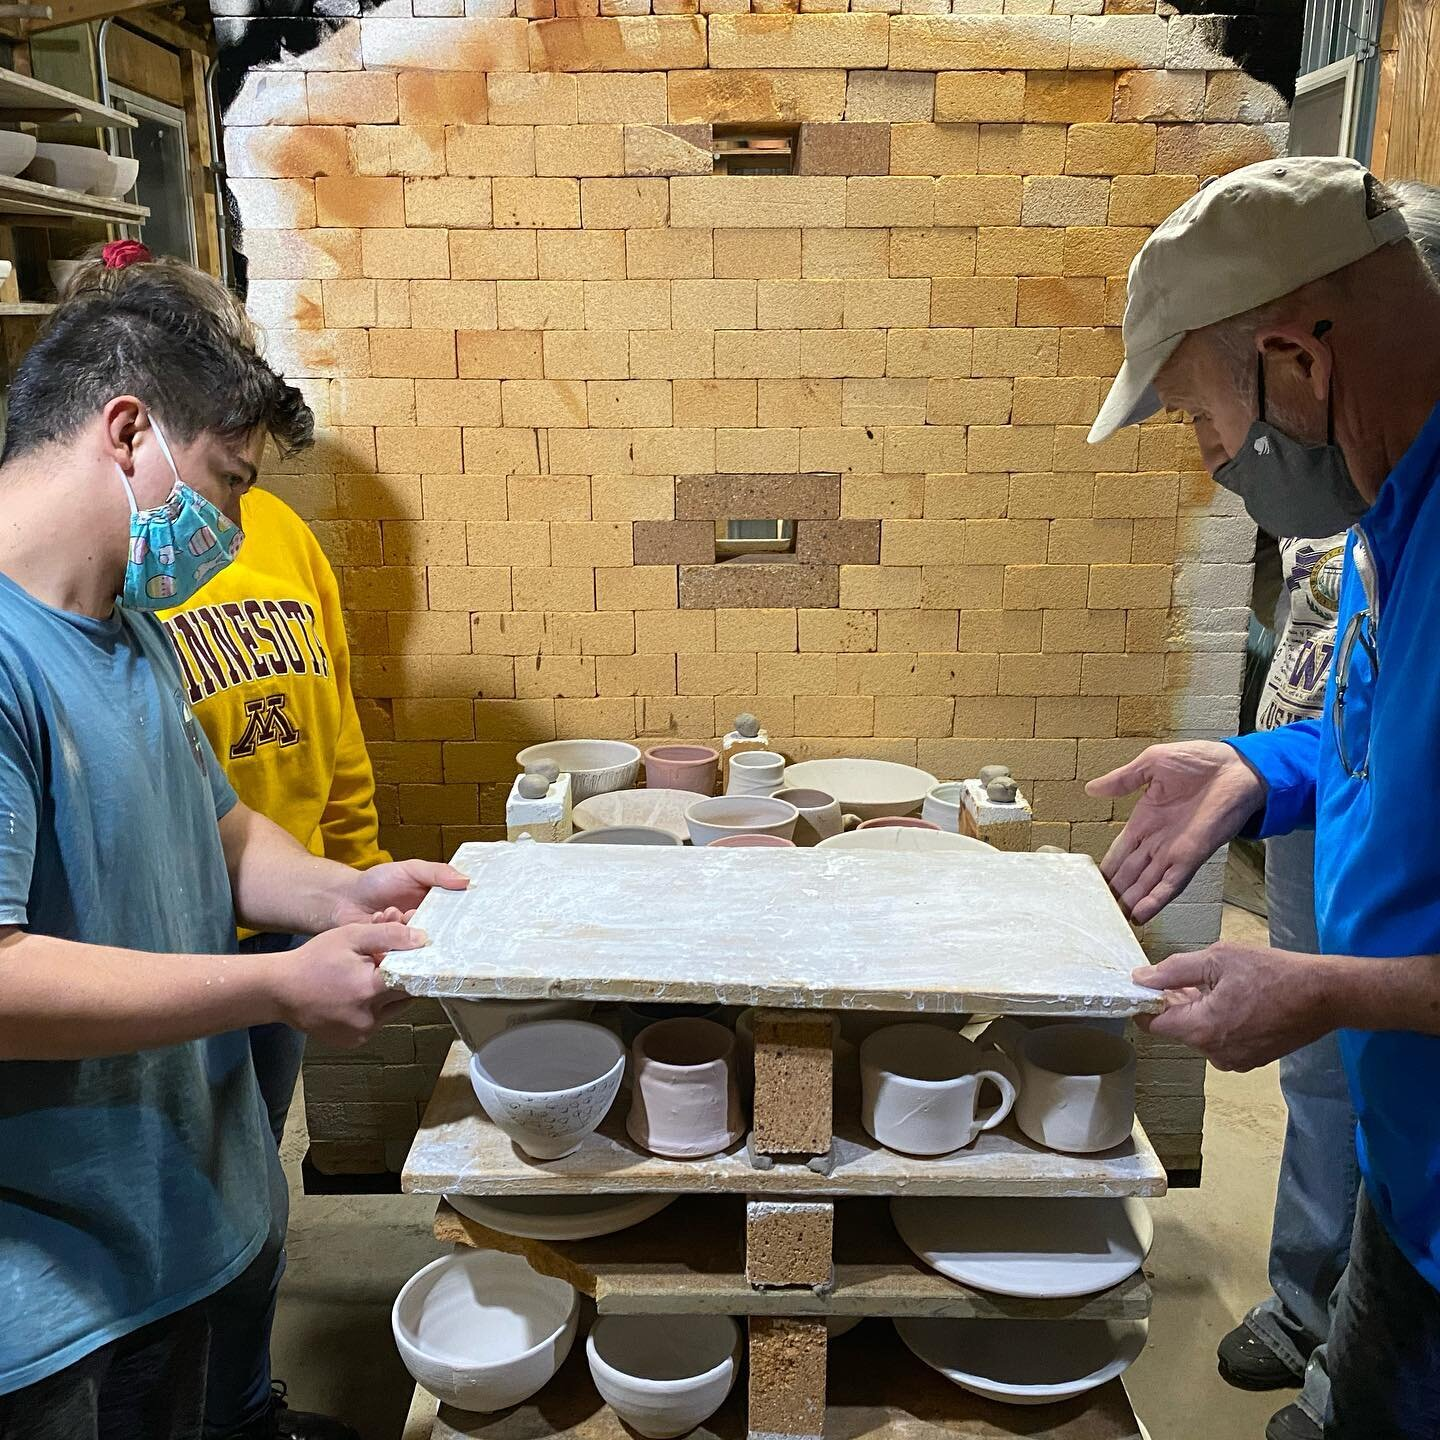 Wonderful job to our students this week! Glazing pots and loading the gas kiln. Positive energy leading into their first class firing of 21' nice work everyone! #learingthroughdoing #practicemakespermanent